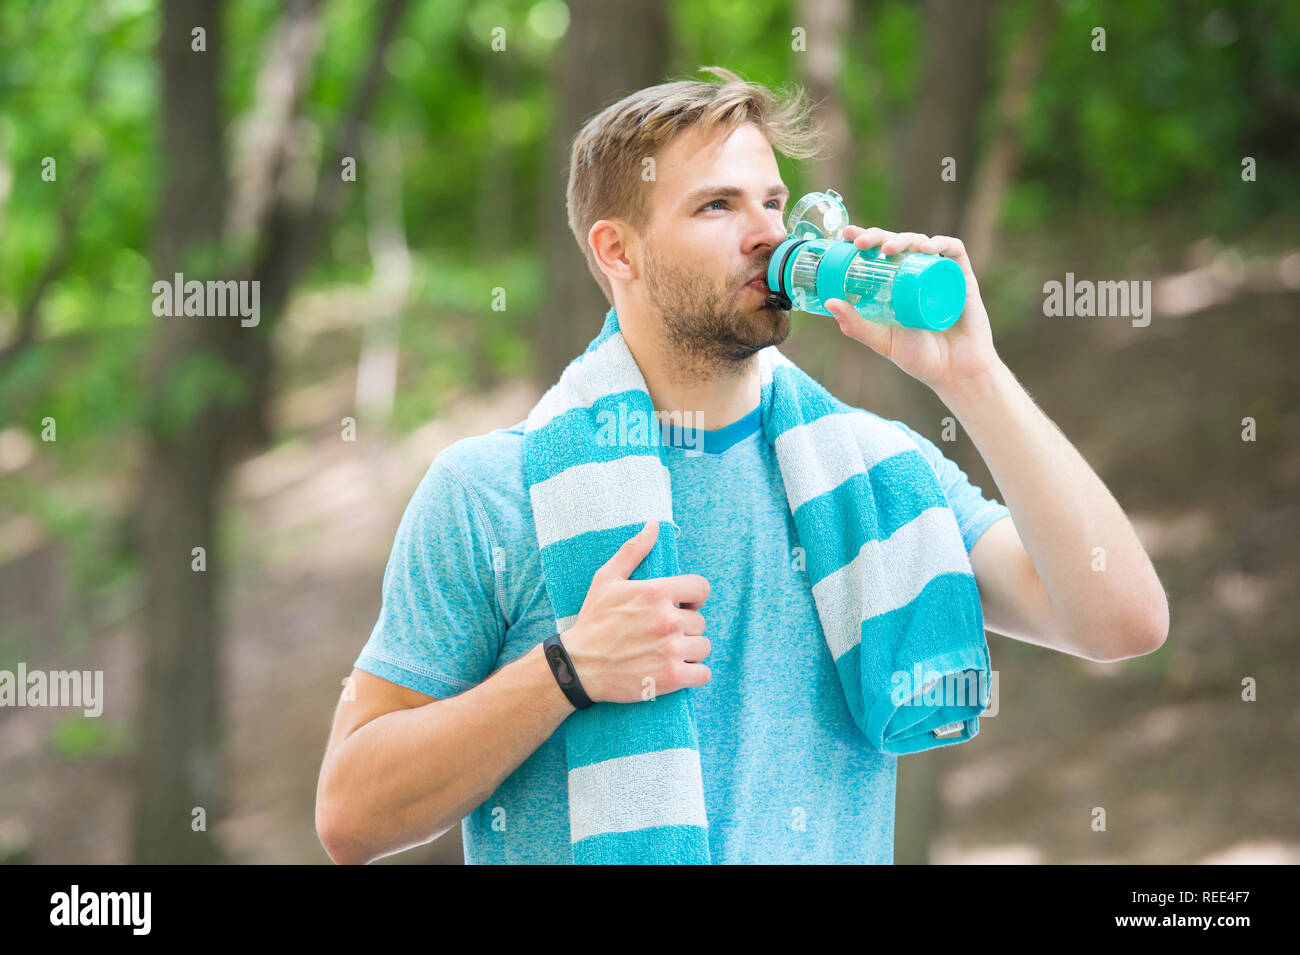 Man with athletic appearance holds bottle with water. Sport and healthy lifestyle concept. Athlete drink water after training at stadium on sunny day. Man athlete in sporty clothes training outdoor. - Stock Image